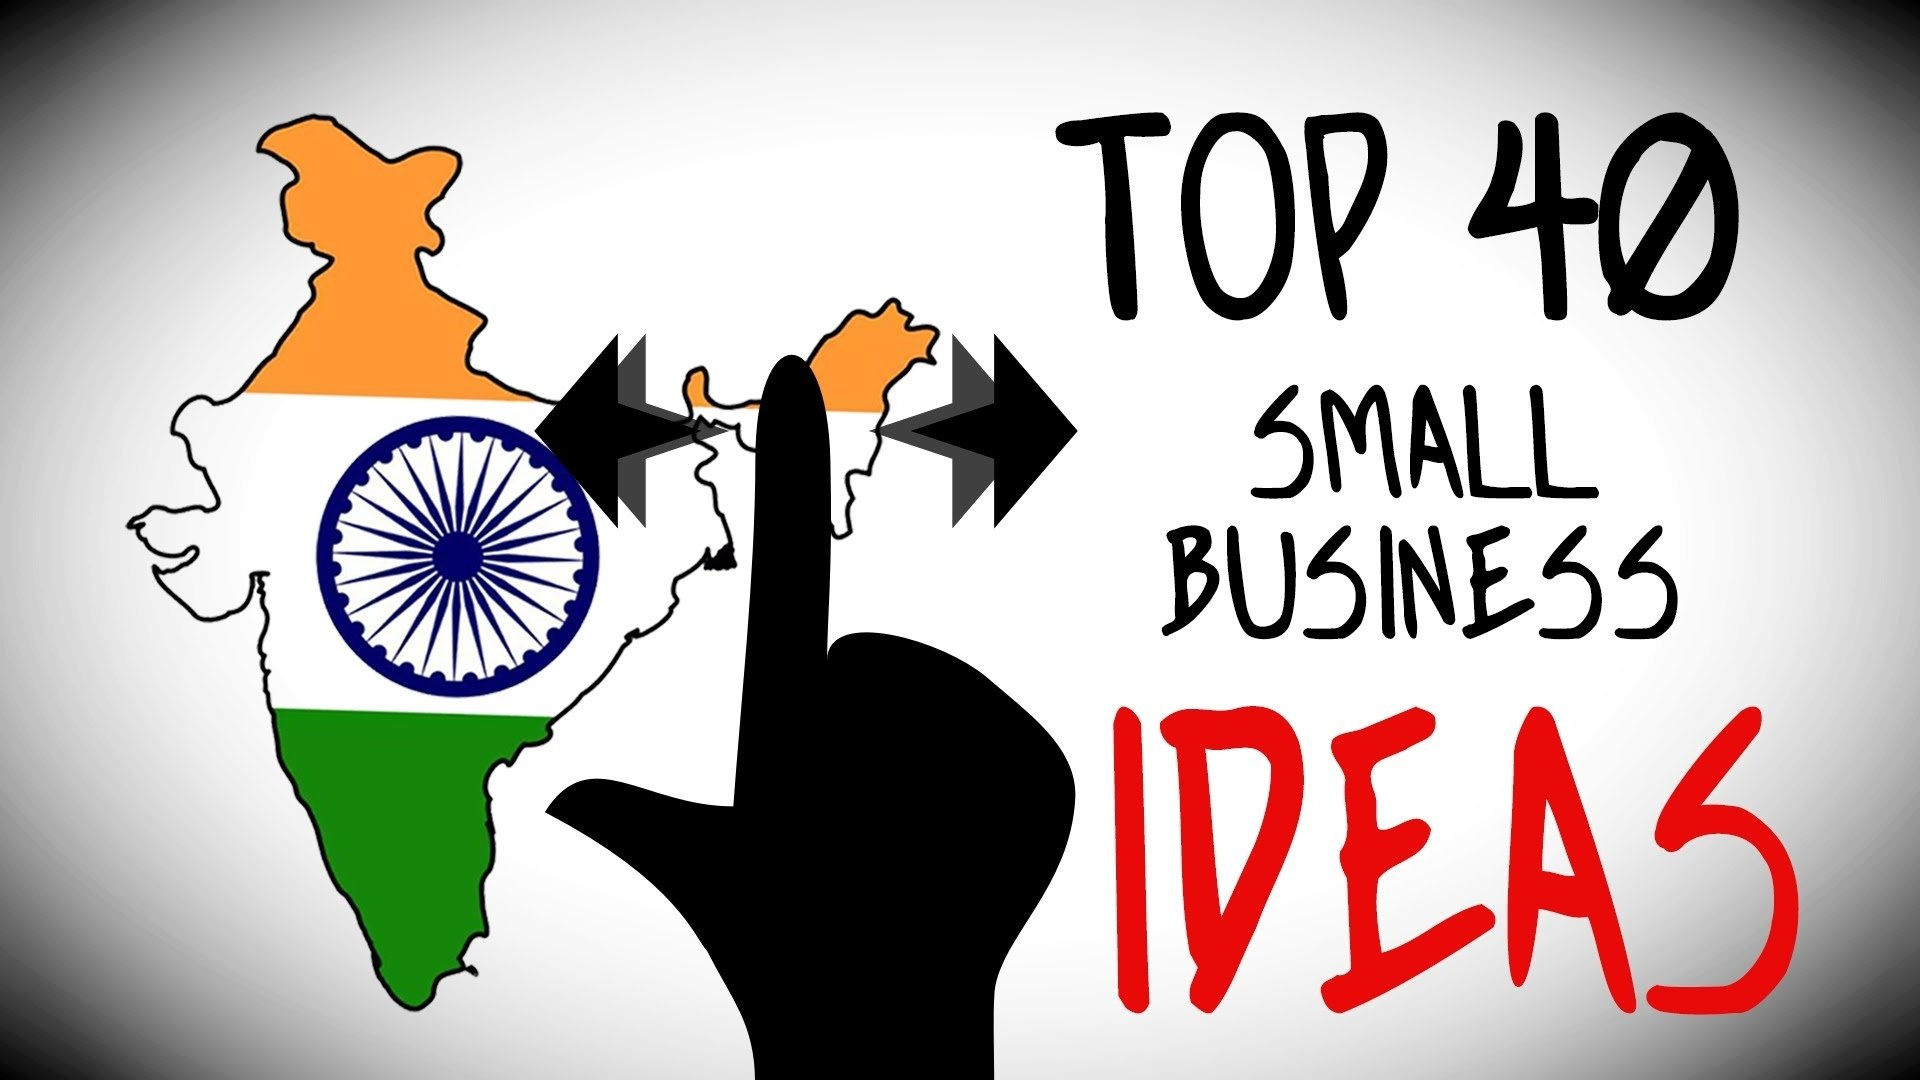 10 Awesome Ideas For A Small Business top 40 small business ideas in india for starting your own business 12